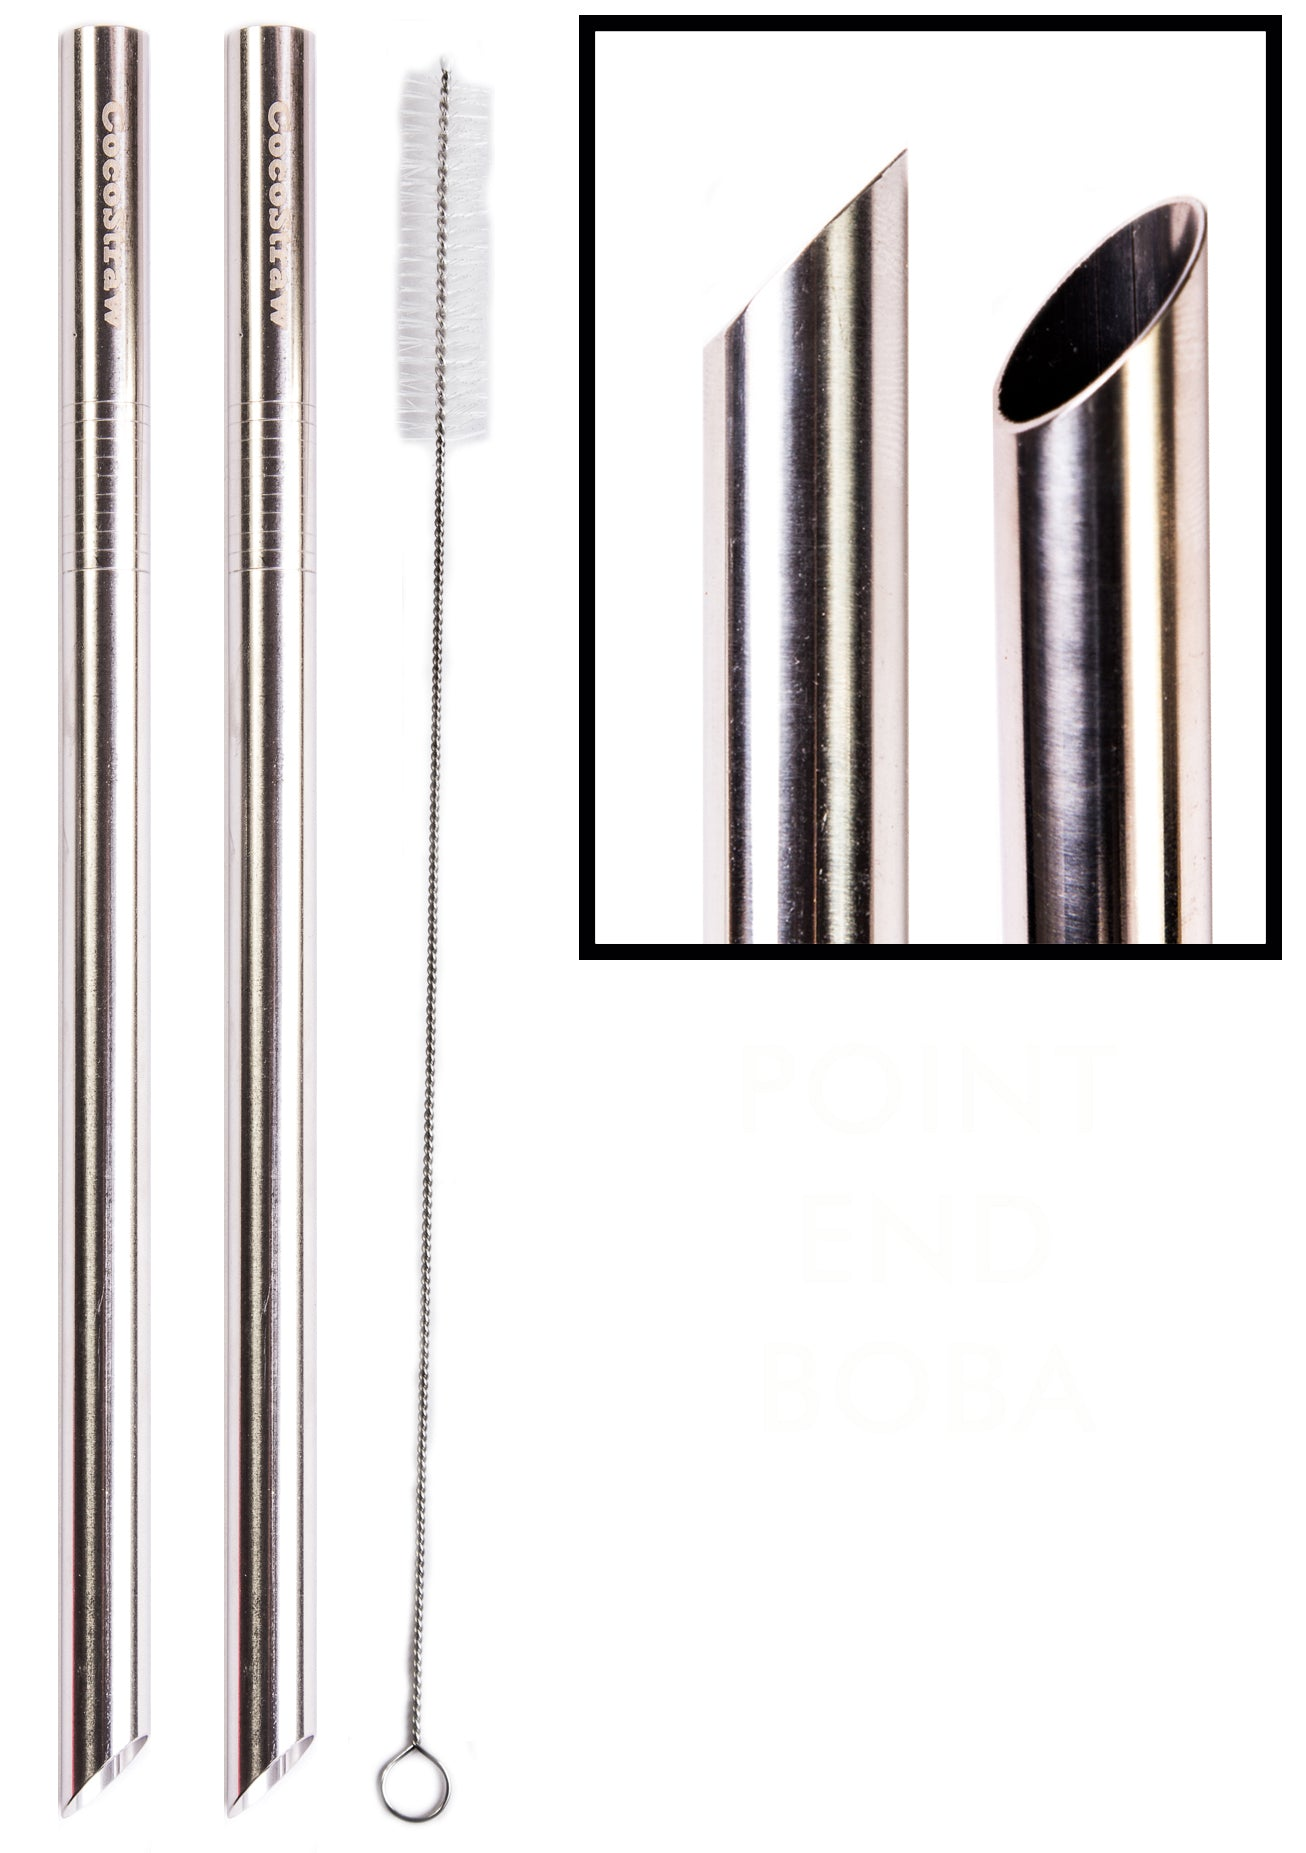 "2 POINT END BOBA Straw Stainless Steel Extra Wide 1/2"" x 9.5"" Long Tapioca Pearl Bubble Tea Thick FAT - CocoStraw Brand"